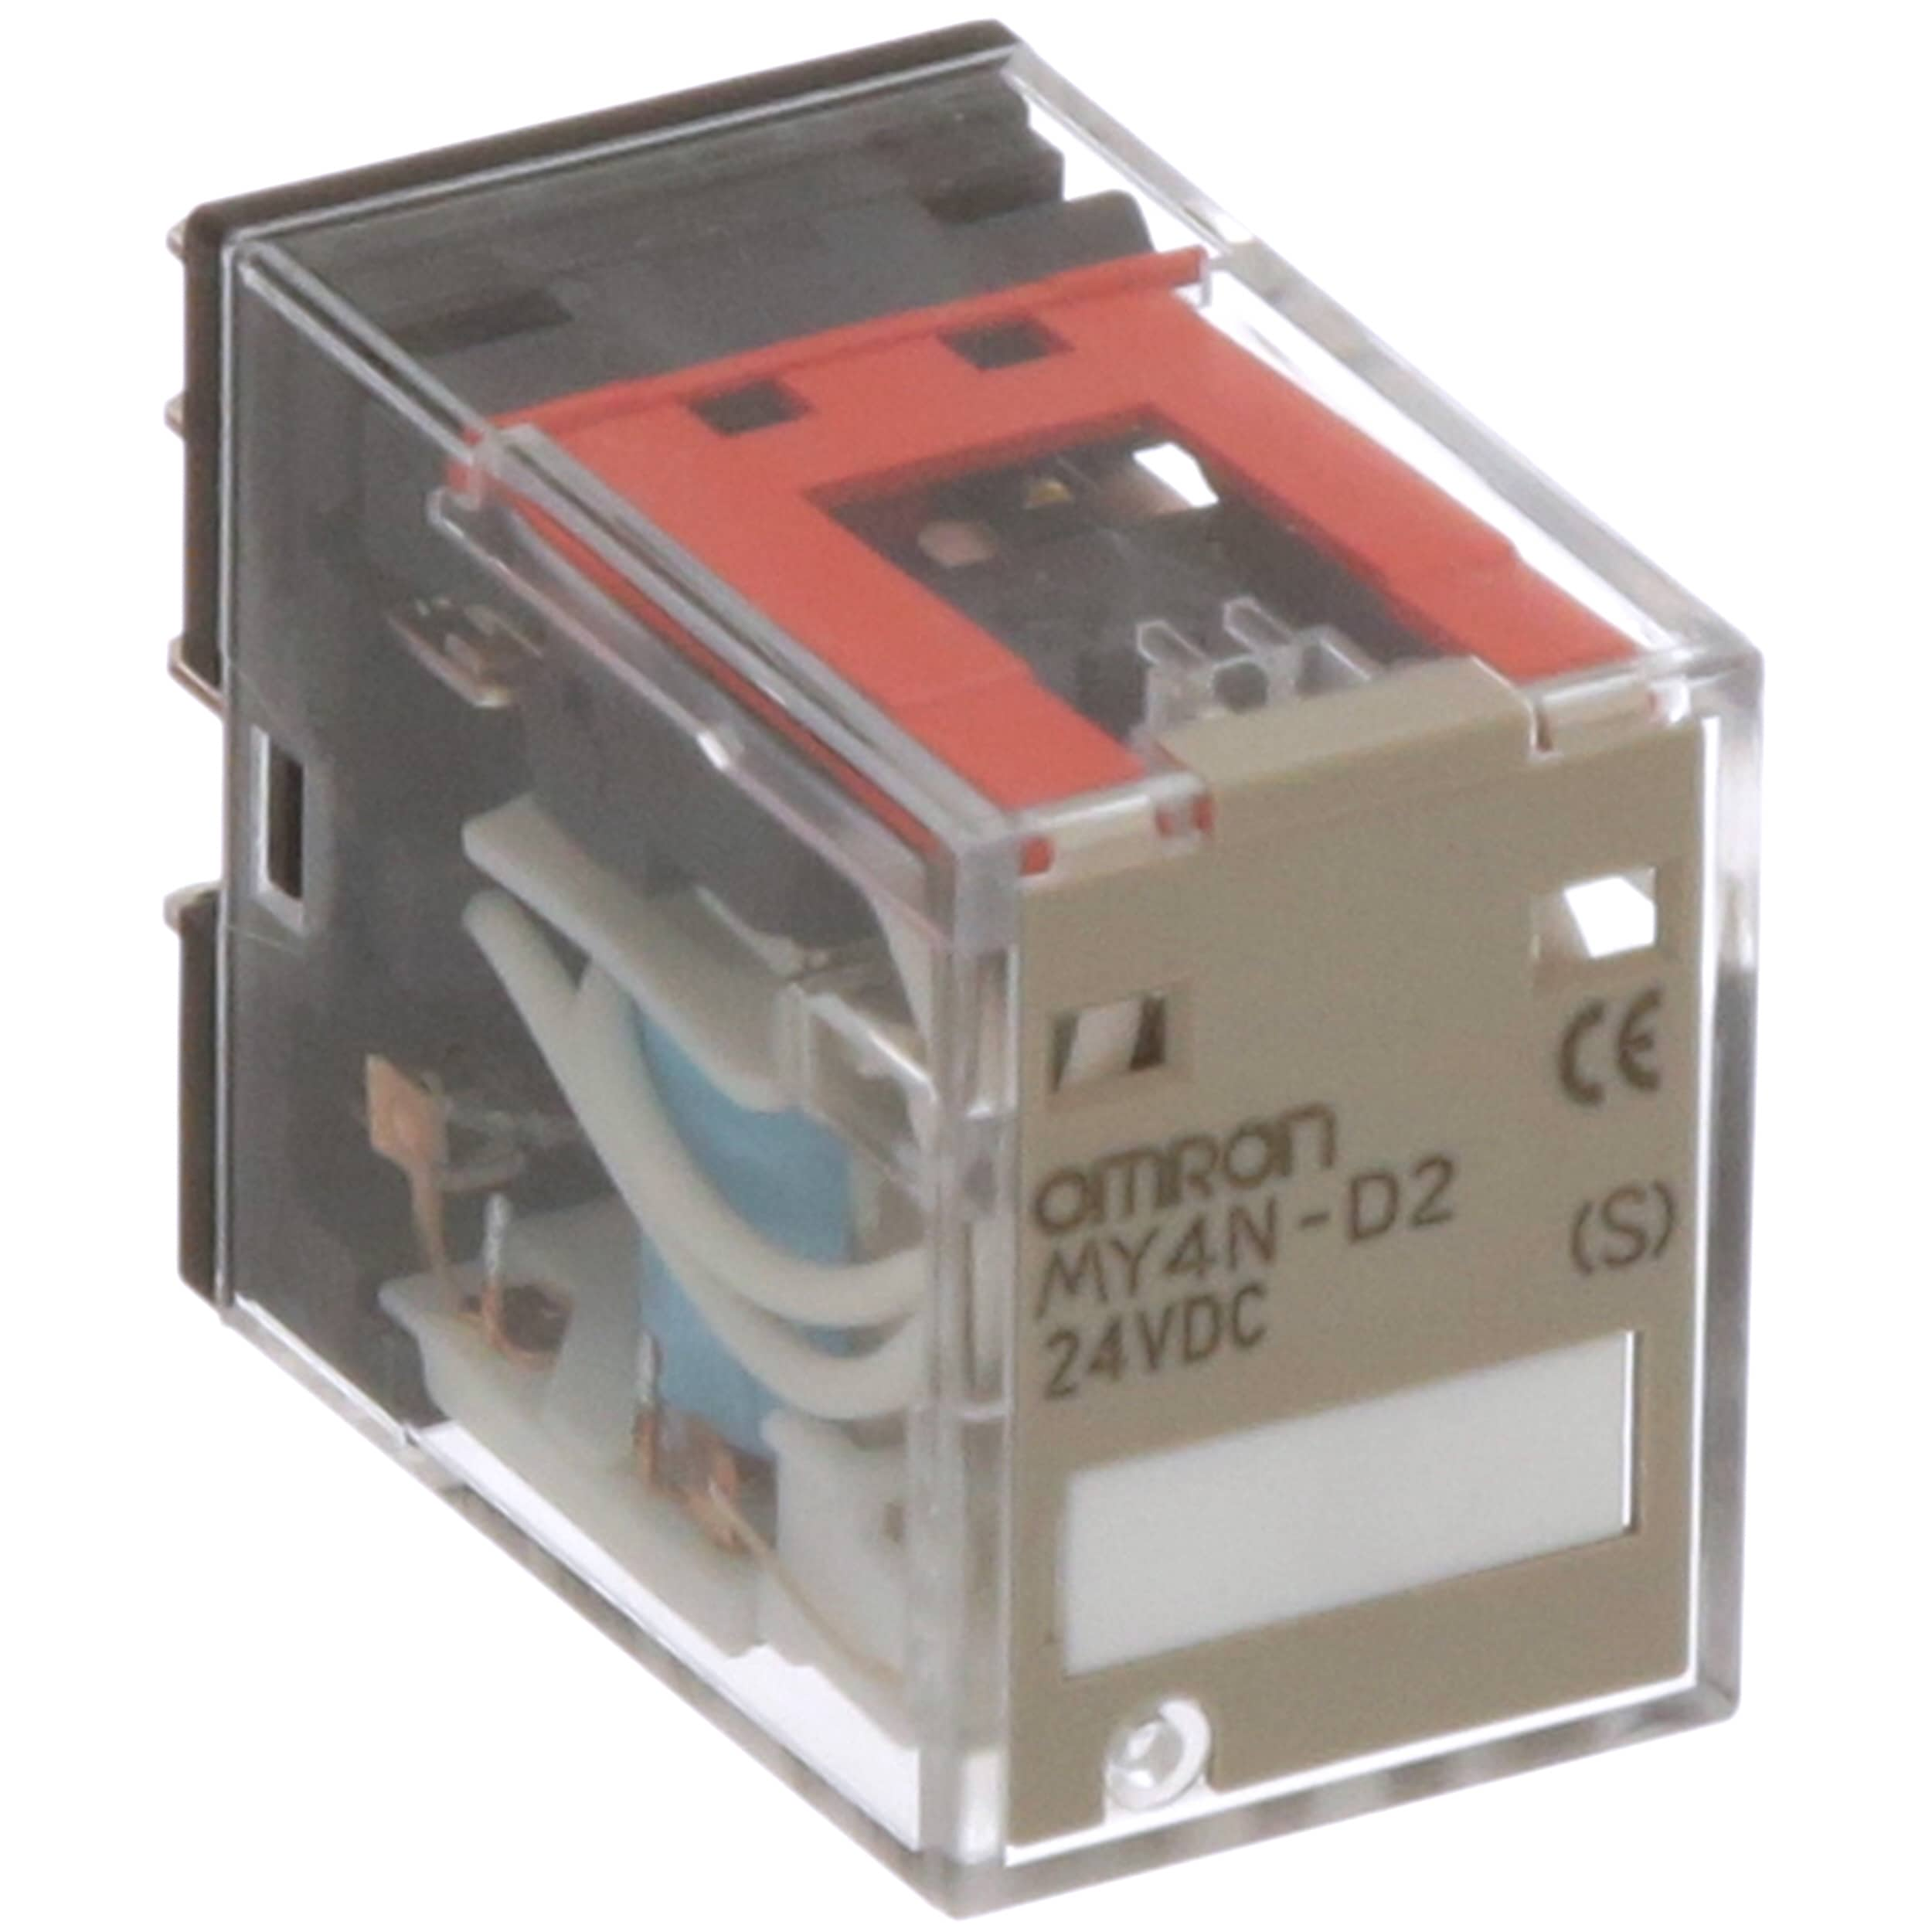 Omron Automation My4nd2dc24s Miniature Power Relays 5a 4pdt Dpdt Latching Relay 12vdc 240vac 125vdc Socket Mount Blade Terminal Allied Electronics